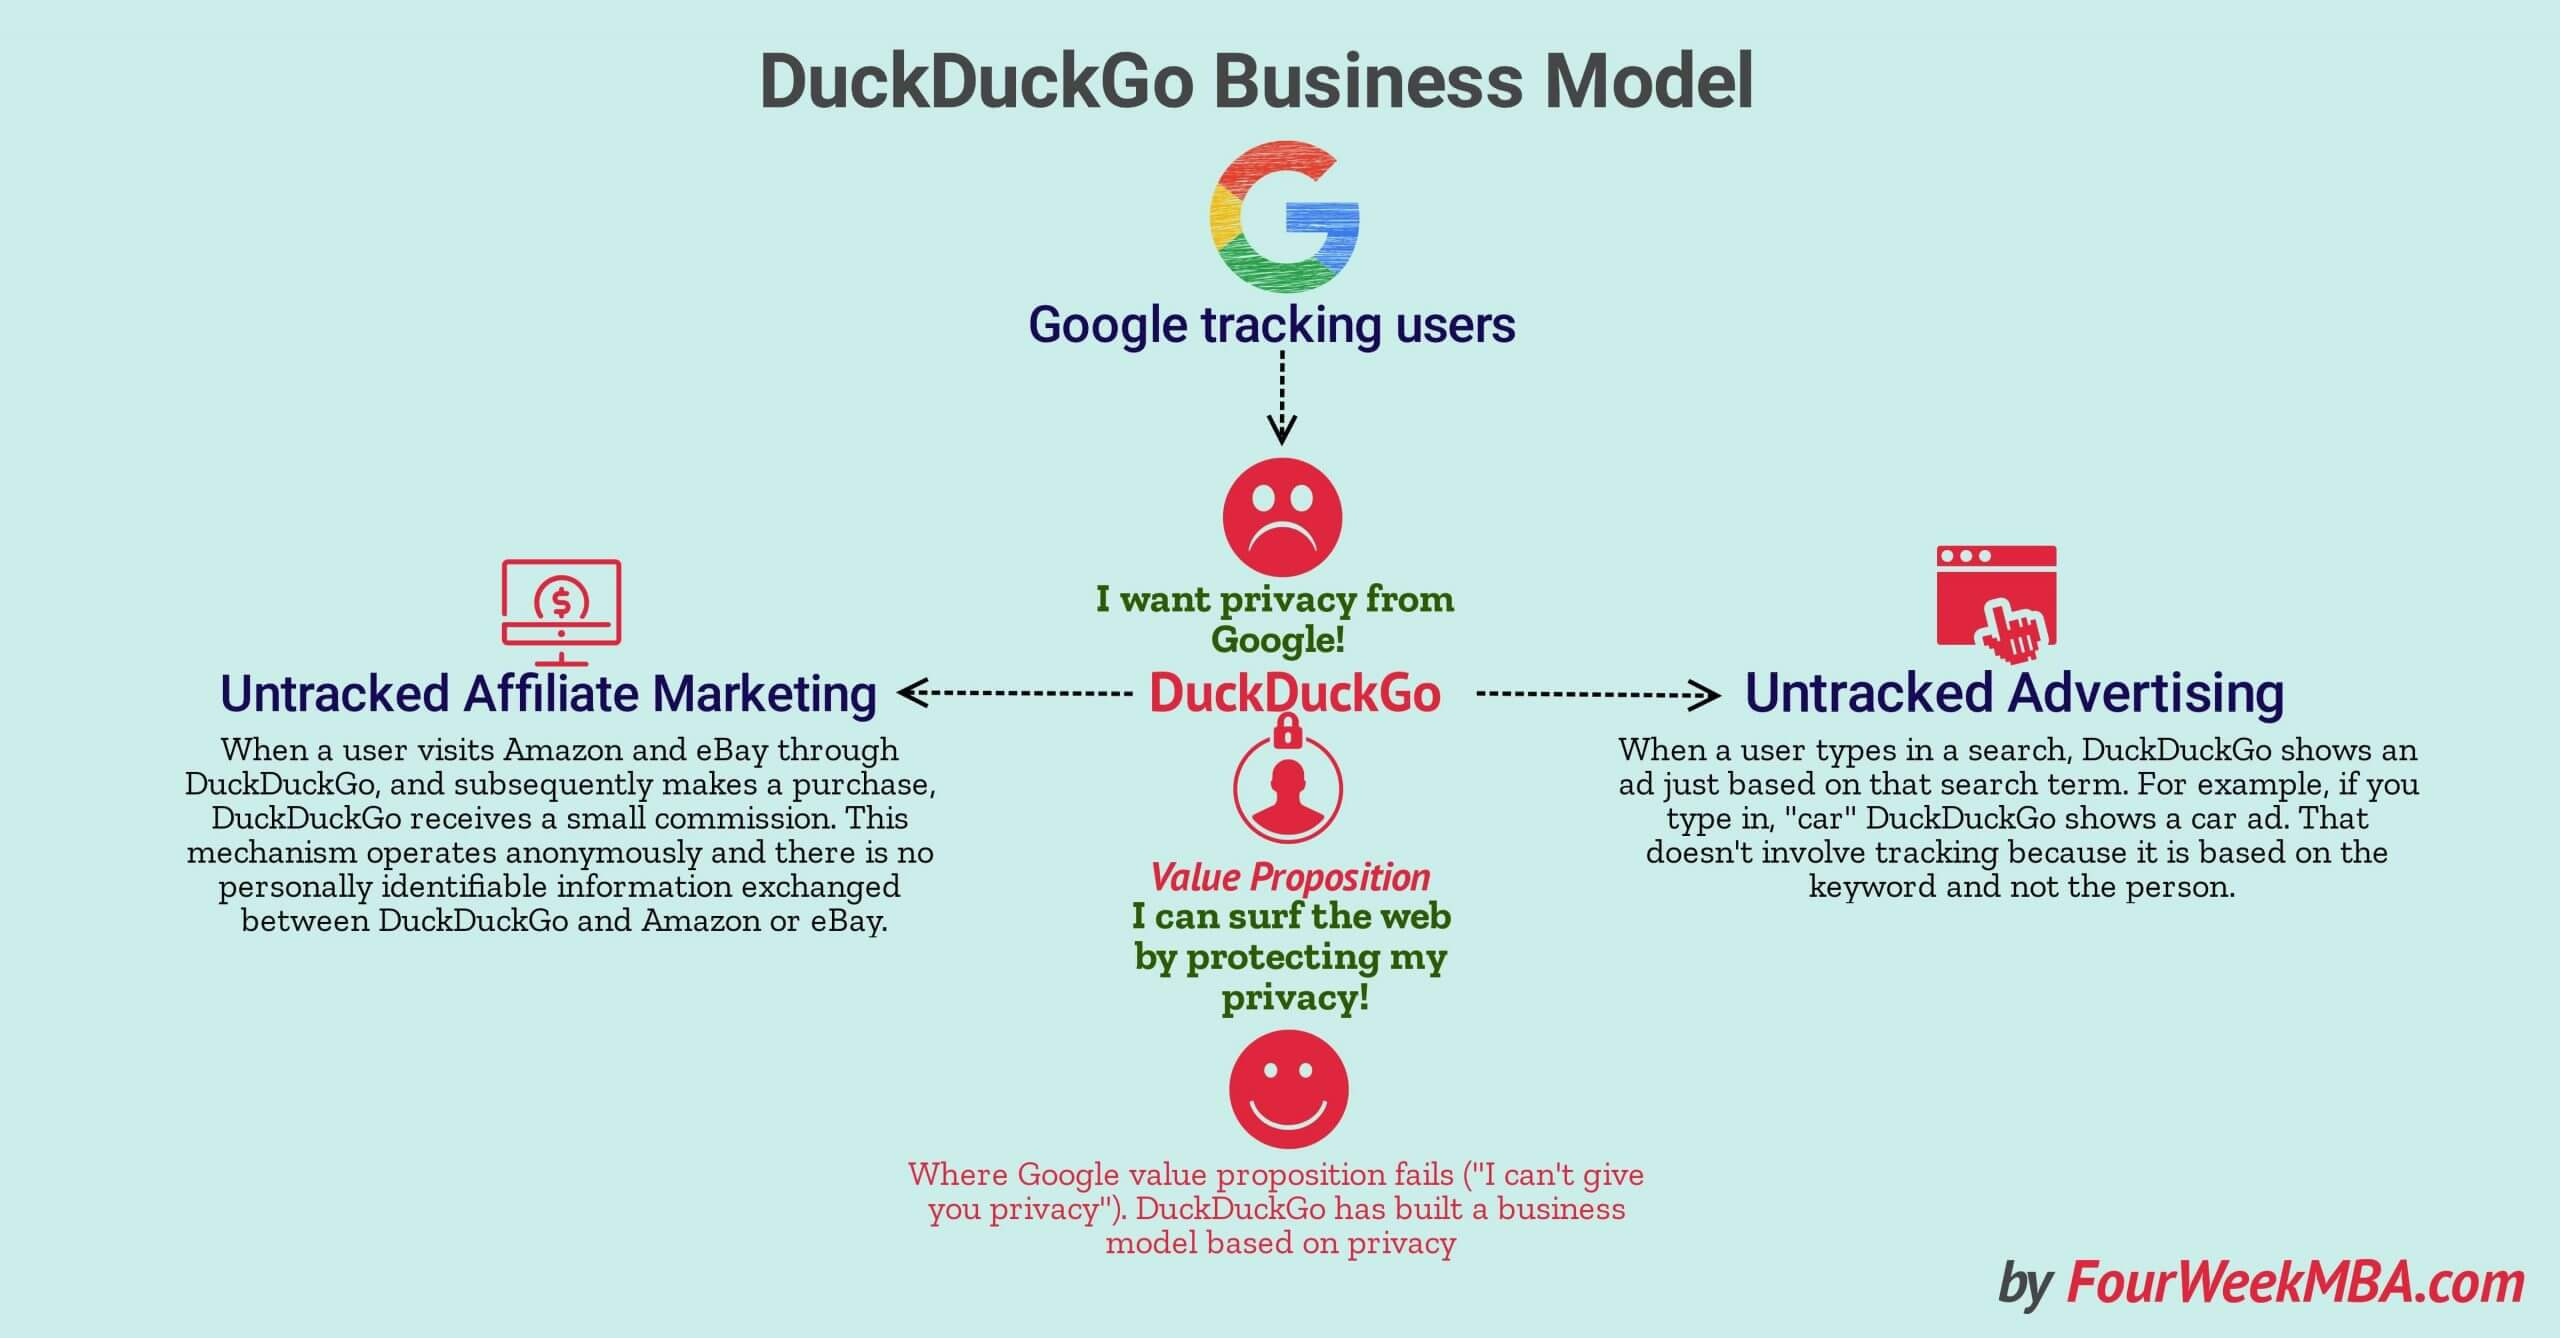 How Does DuckDuckGo Make Money? DuckDuckGo Business Model Explained